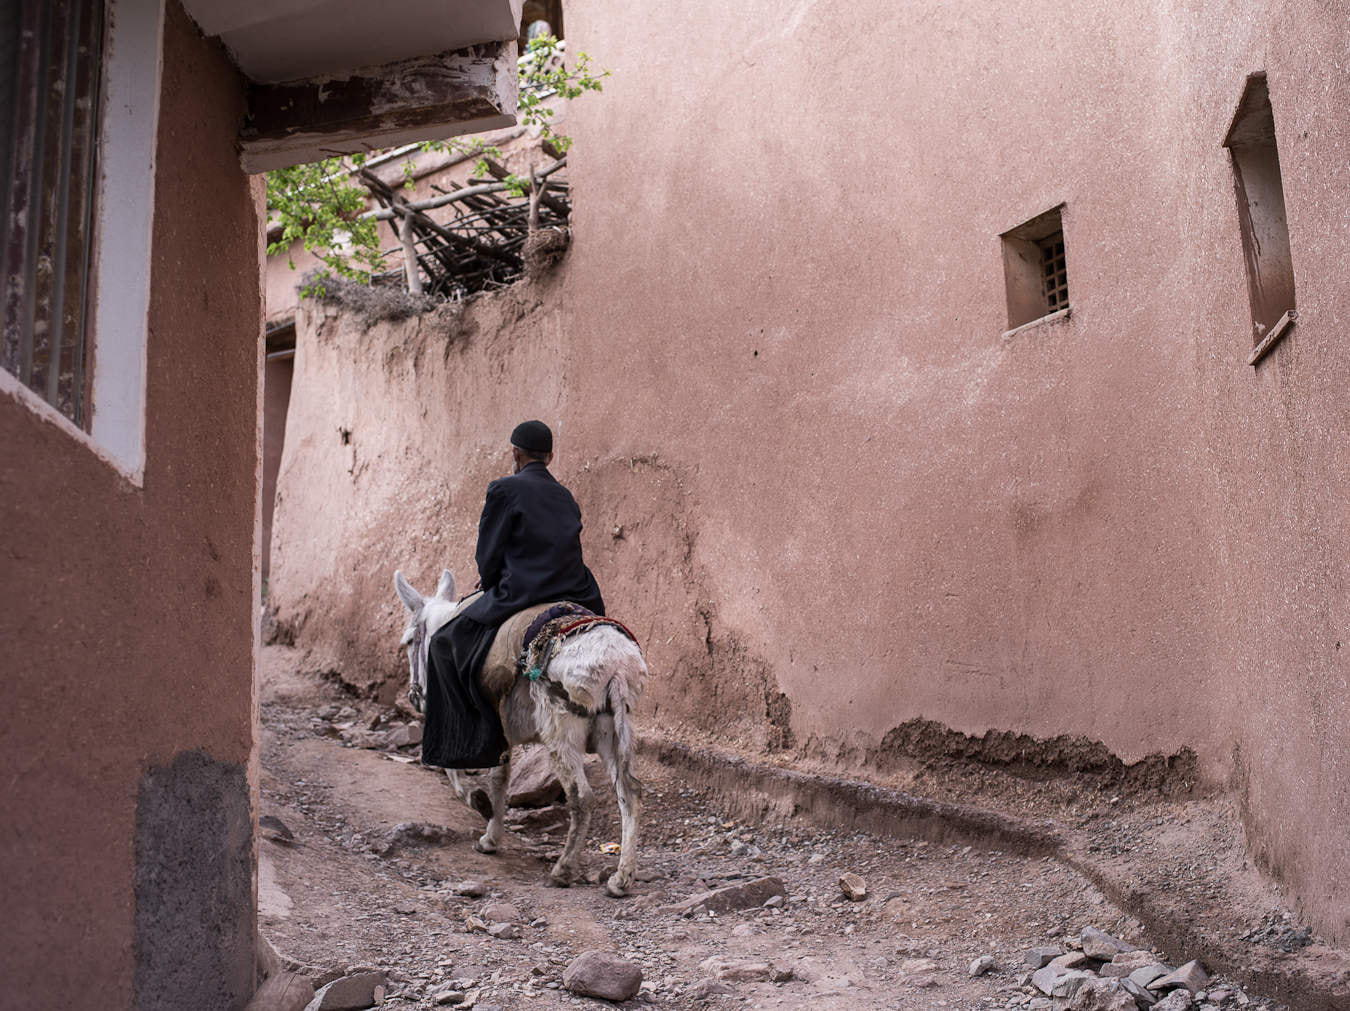 Photograph Village Transport, Abyaneh, Iran by Chiaro Scurist on 500px